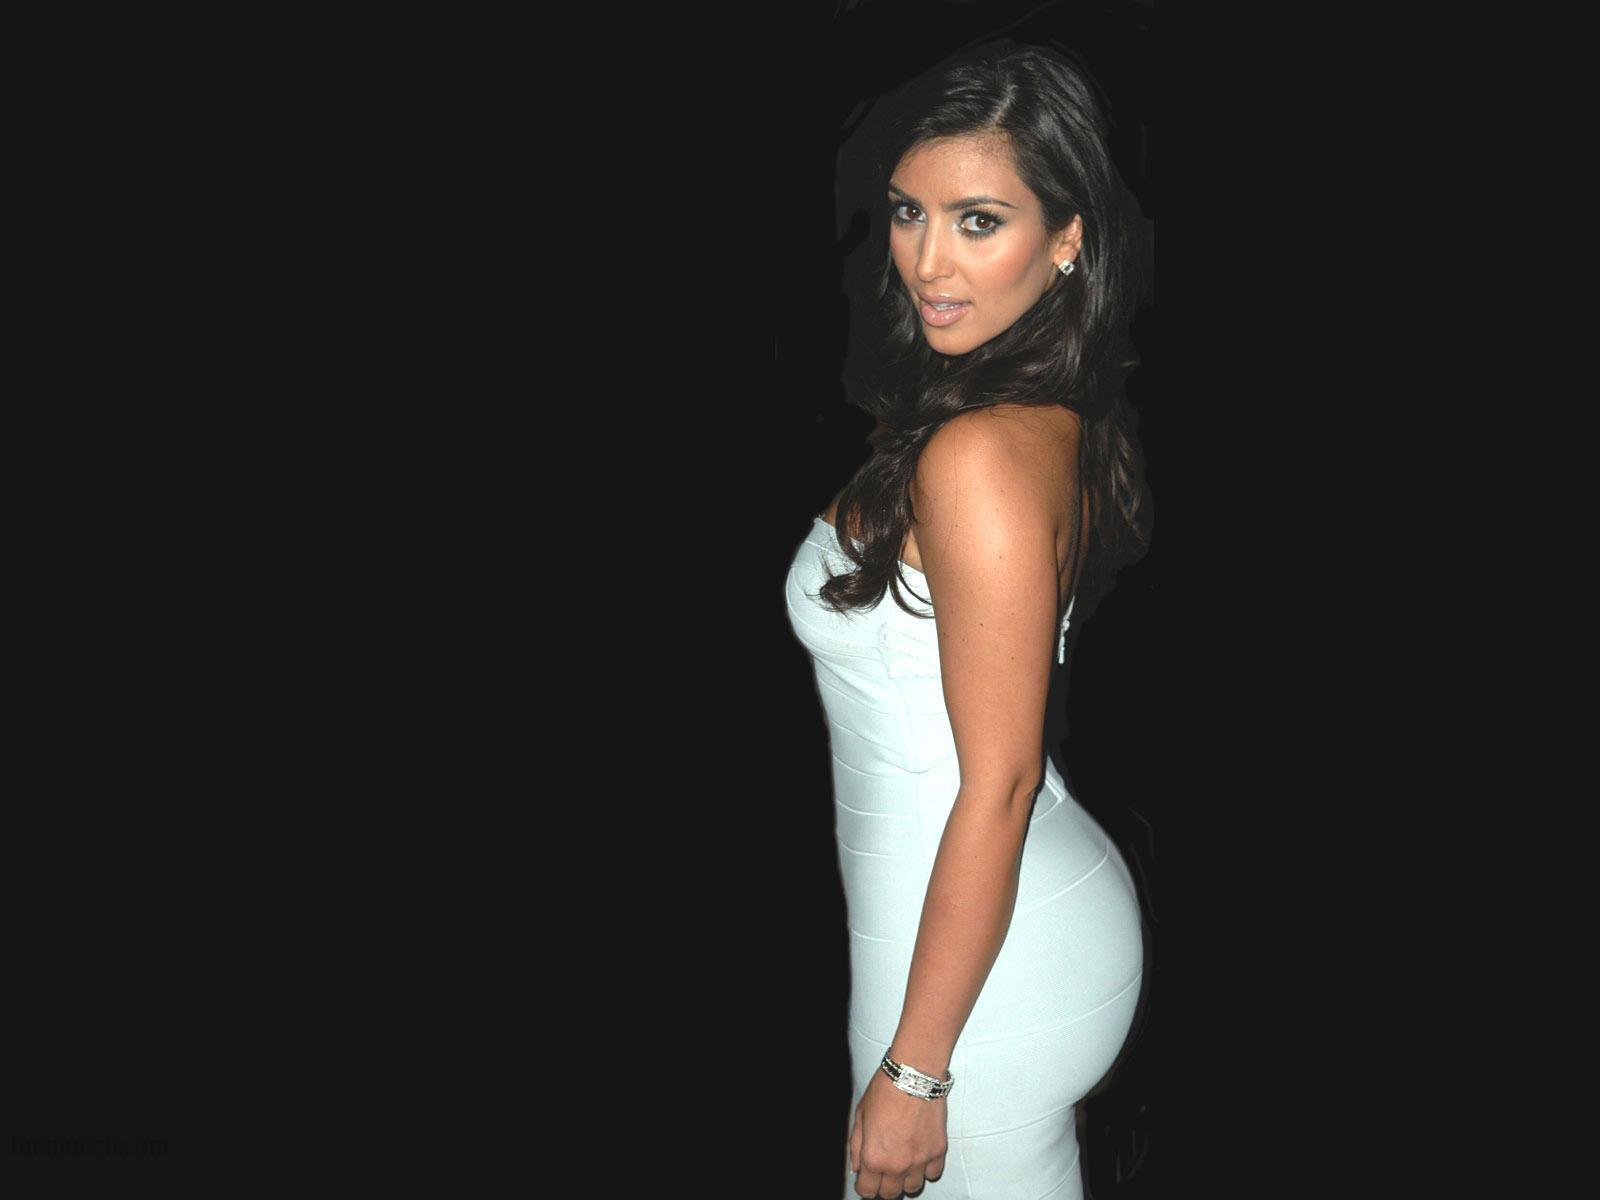 Kim-Kardashian-for-iPhone-×768-Kim-Kardashian-Picture-wallpaper-wp3407799